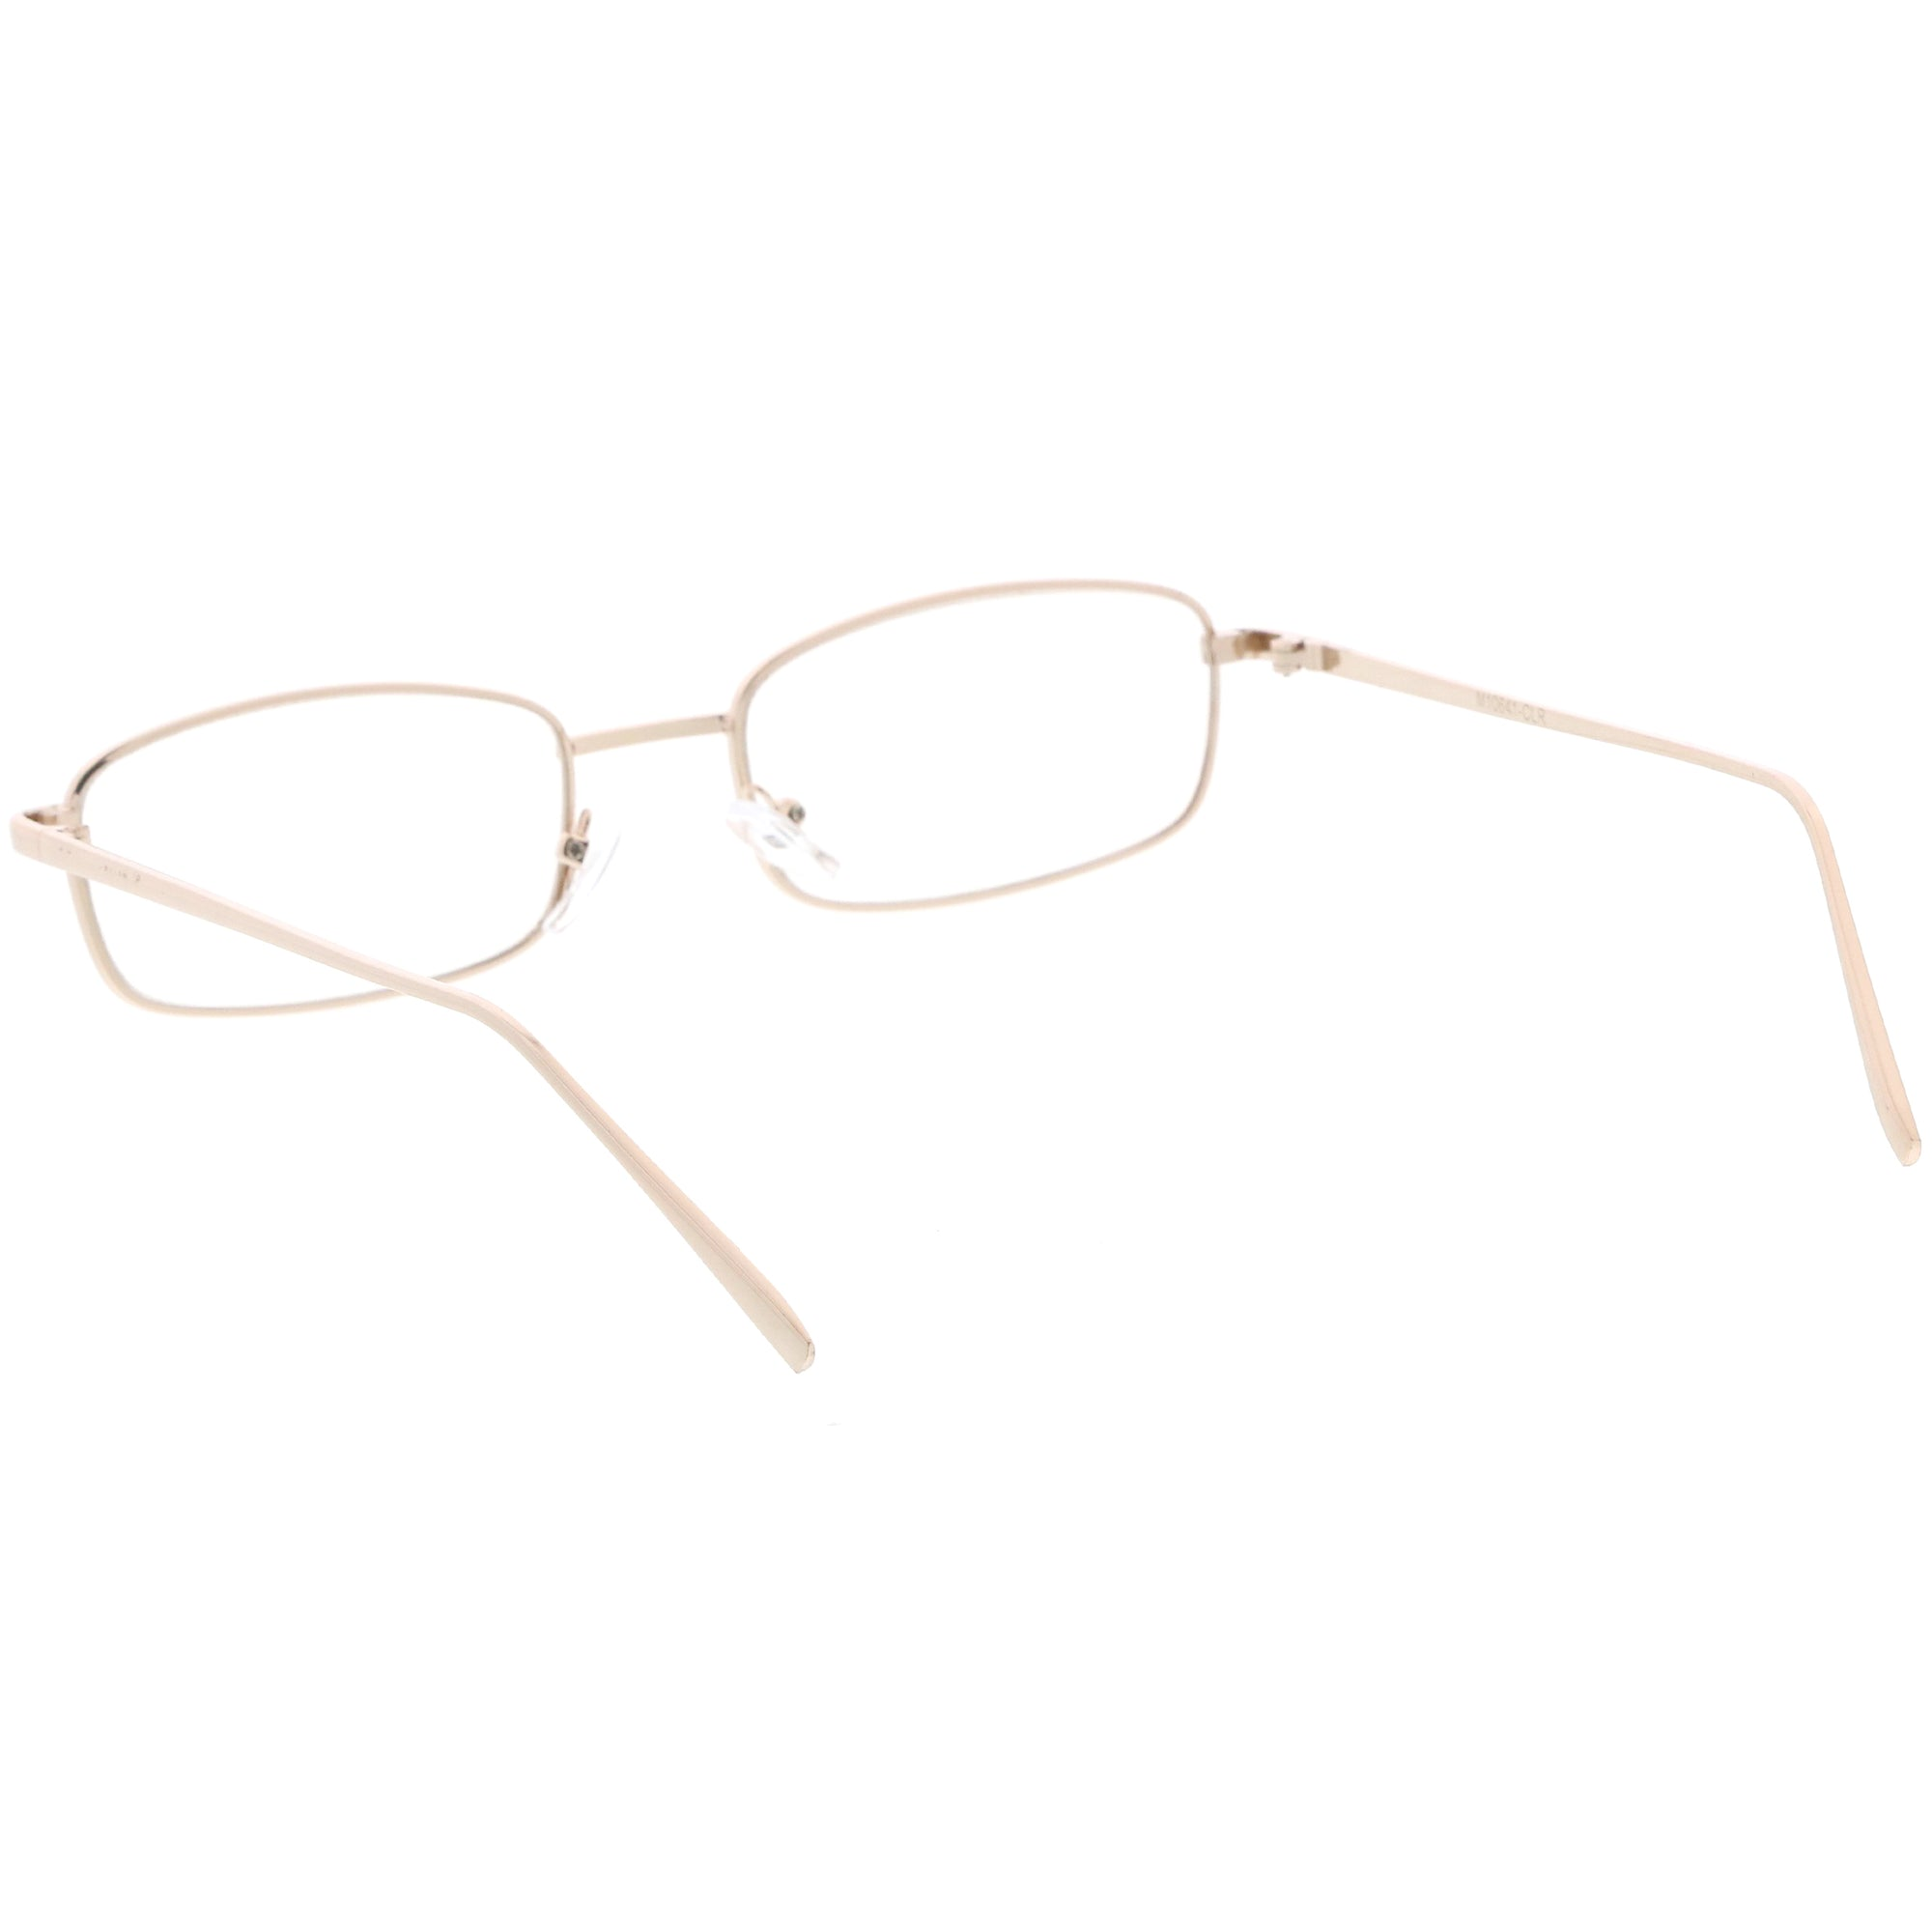 Men/'s or Women CLASSIC VINTAGE Style Clear Lens EYE GLASSES Silver Fashion Frame